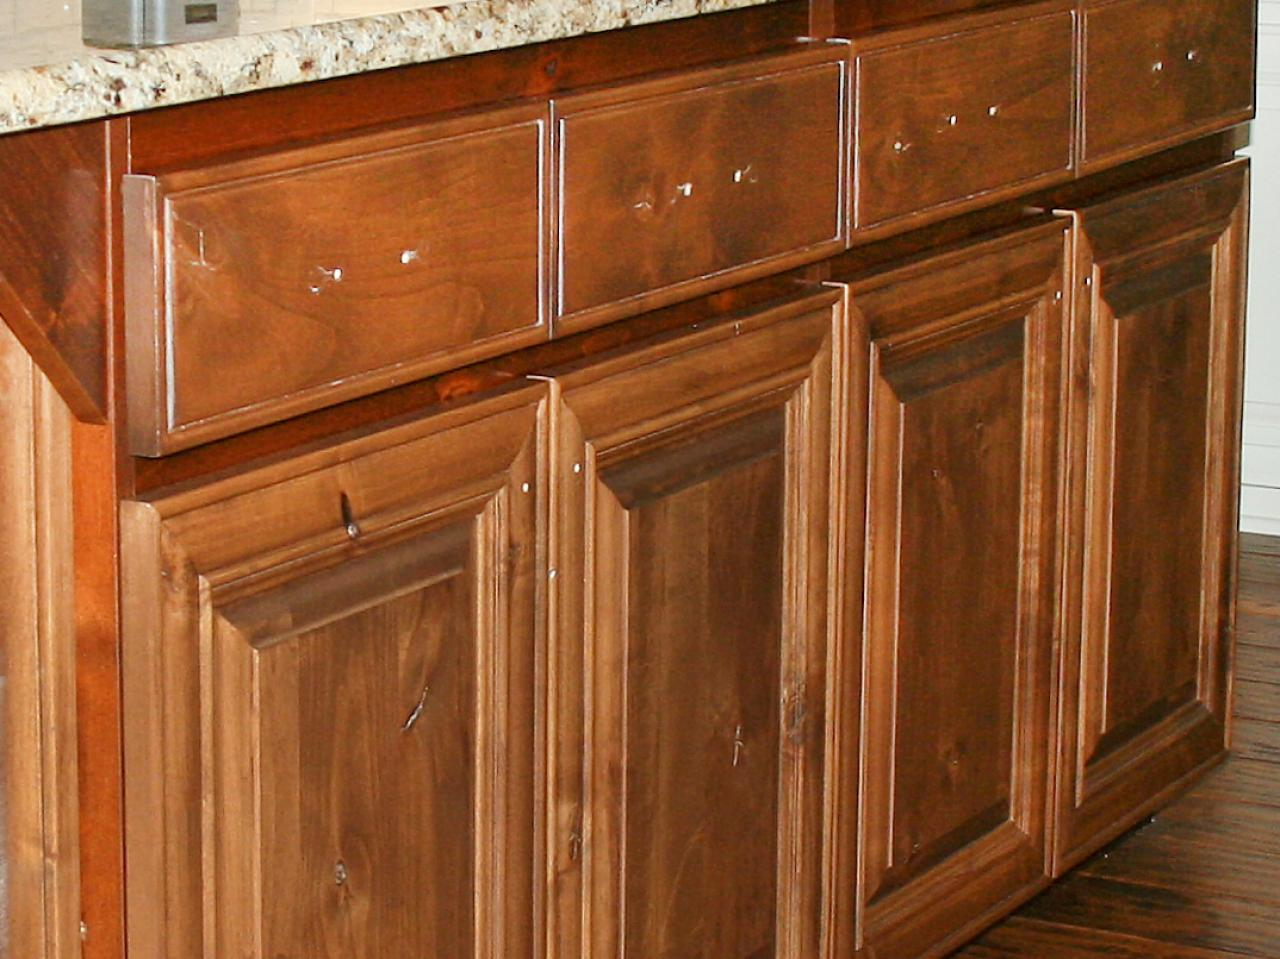 How To Prep Kitchen Cabinets For Painting Customize Your Kitchen With A Painted Island Hgtv